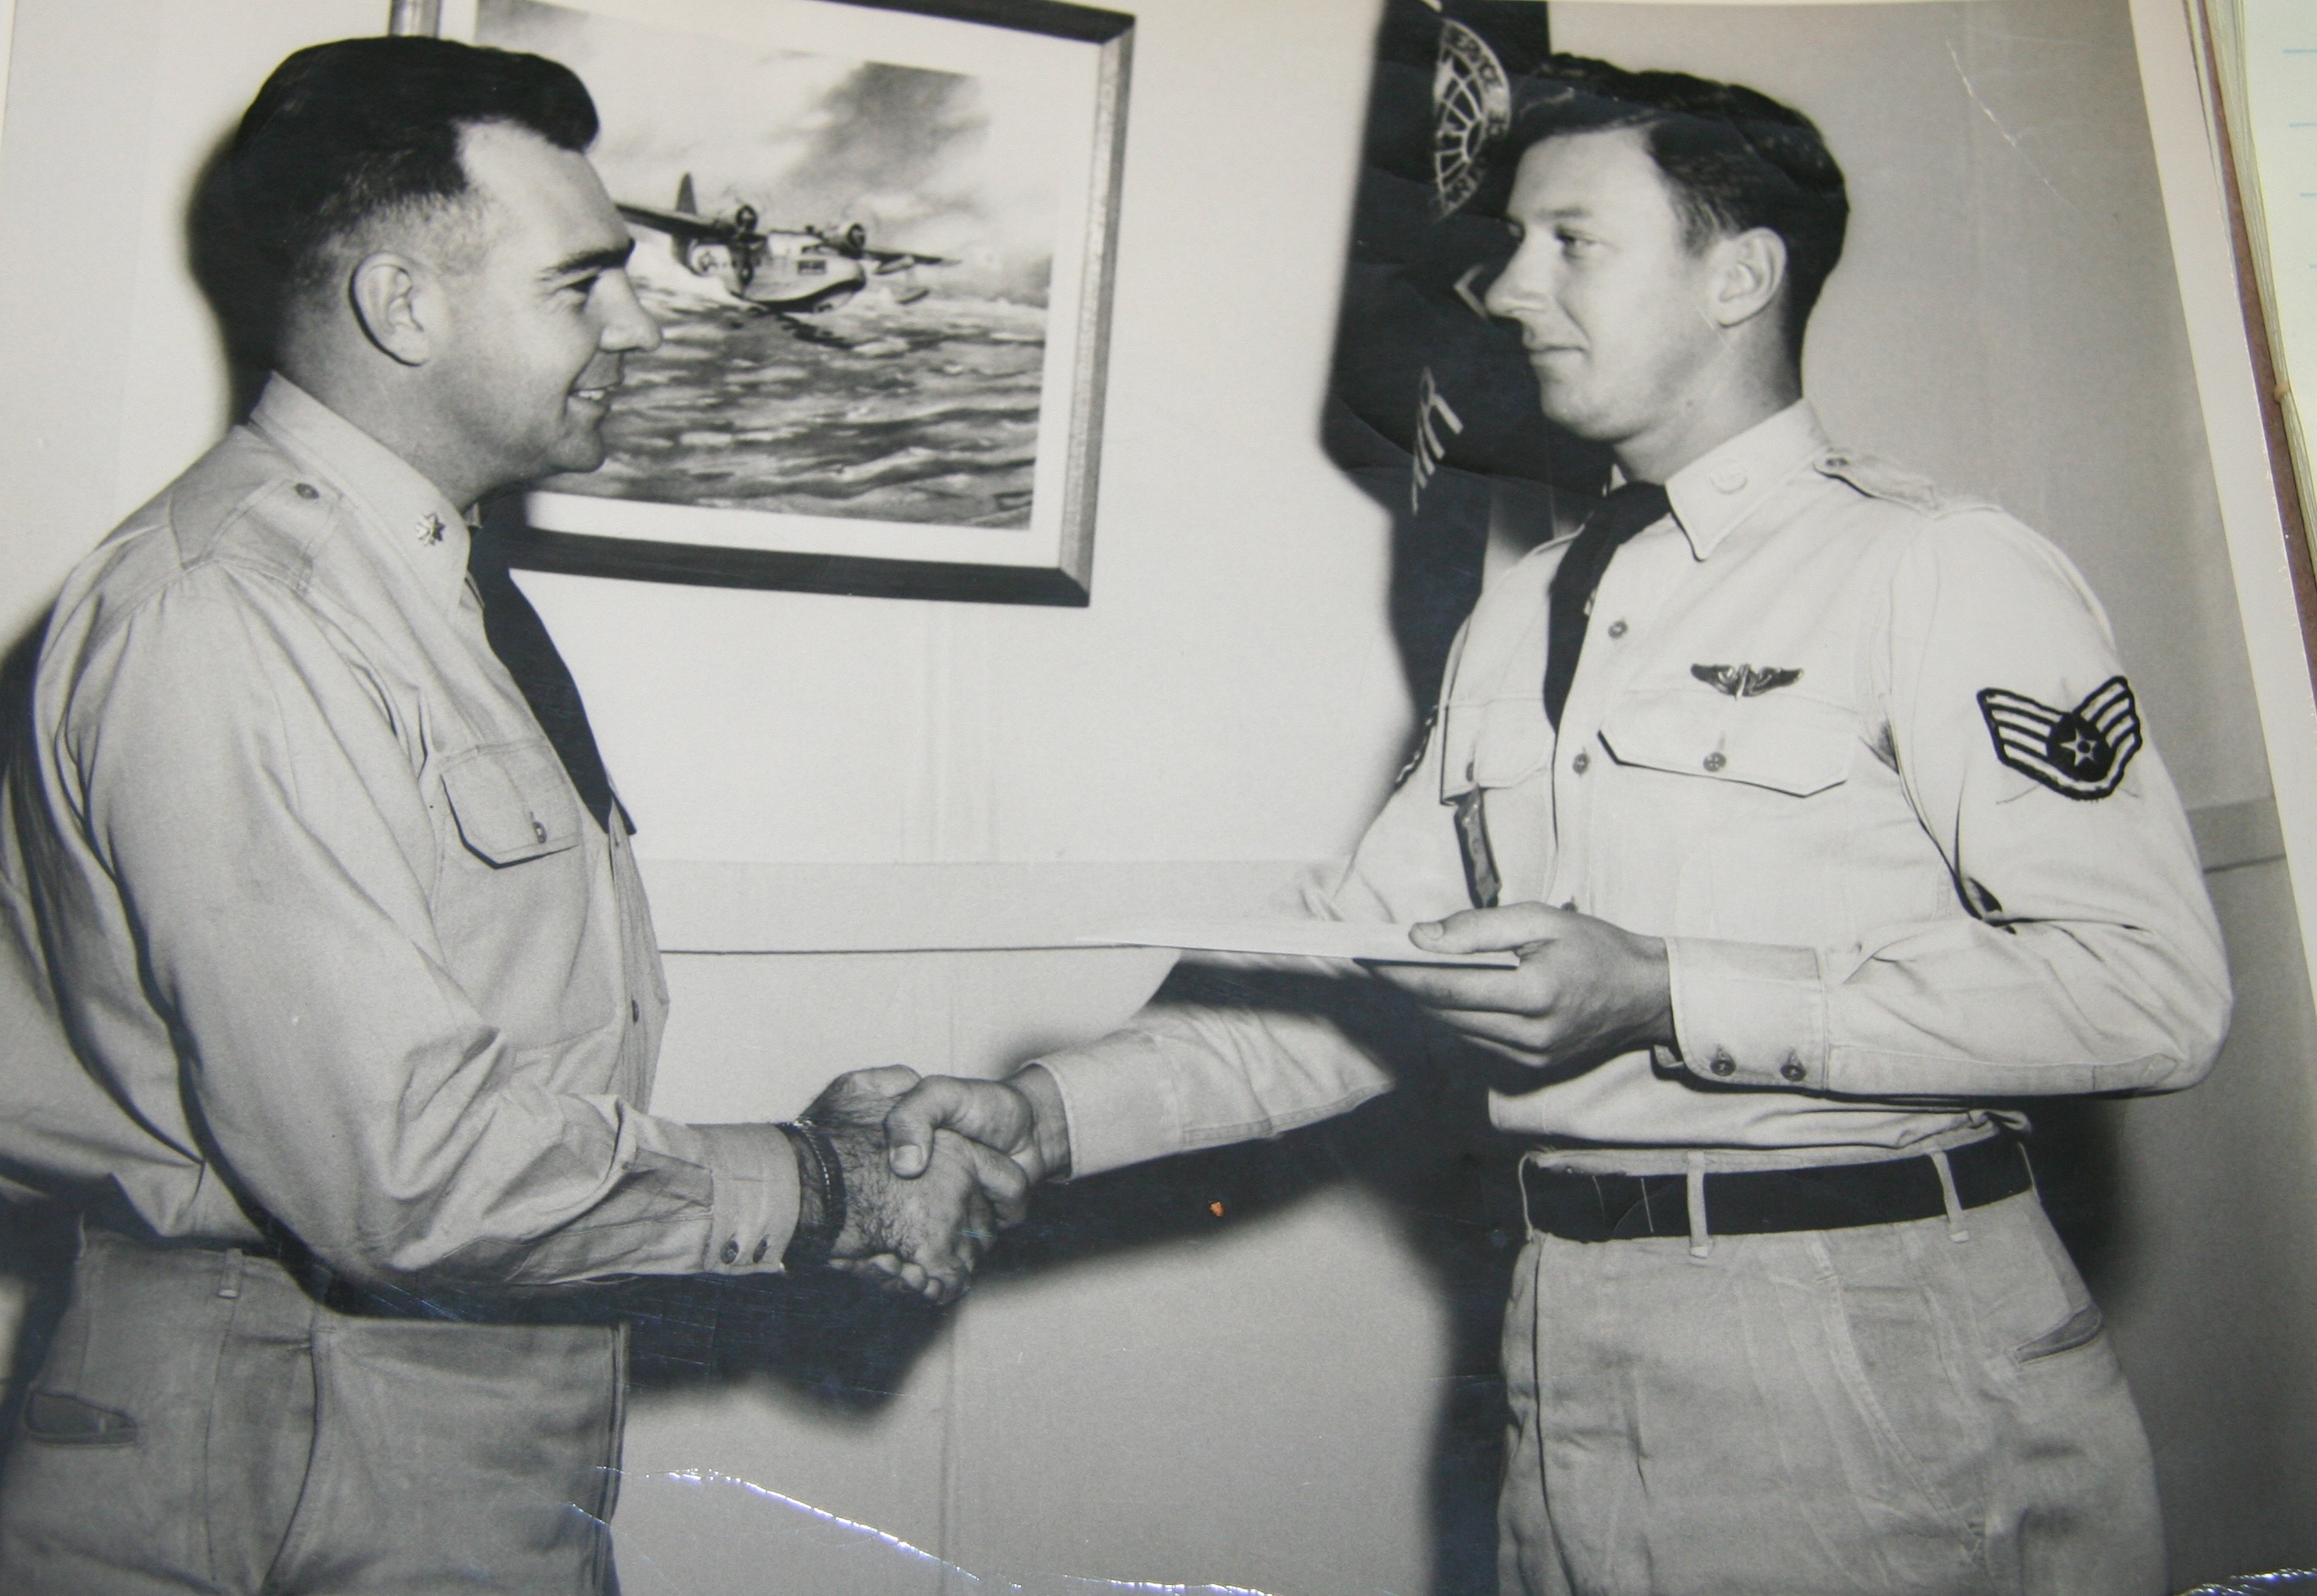 In 1952, Technical Sergeant Bill Steffens (right) is congratulated by the Commanding Officer of his squadron at Hickam Air Force Base in Owahu, Hawaii, for his winning design of a logo for the then Air Sea Rescue Unit.